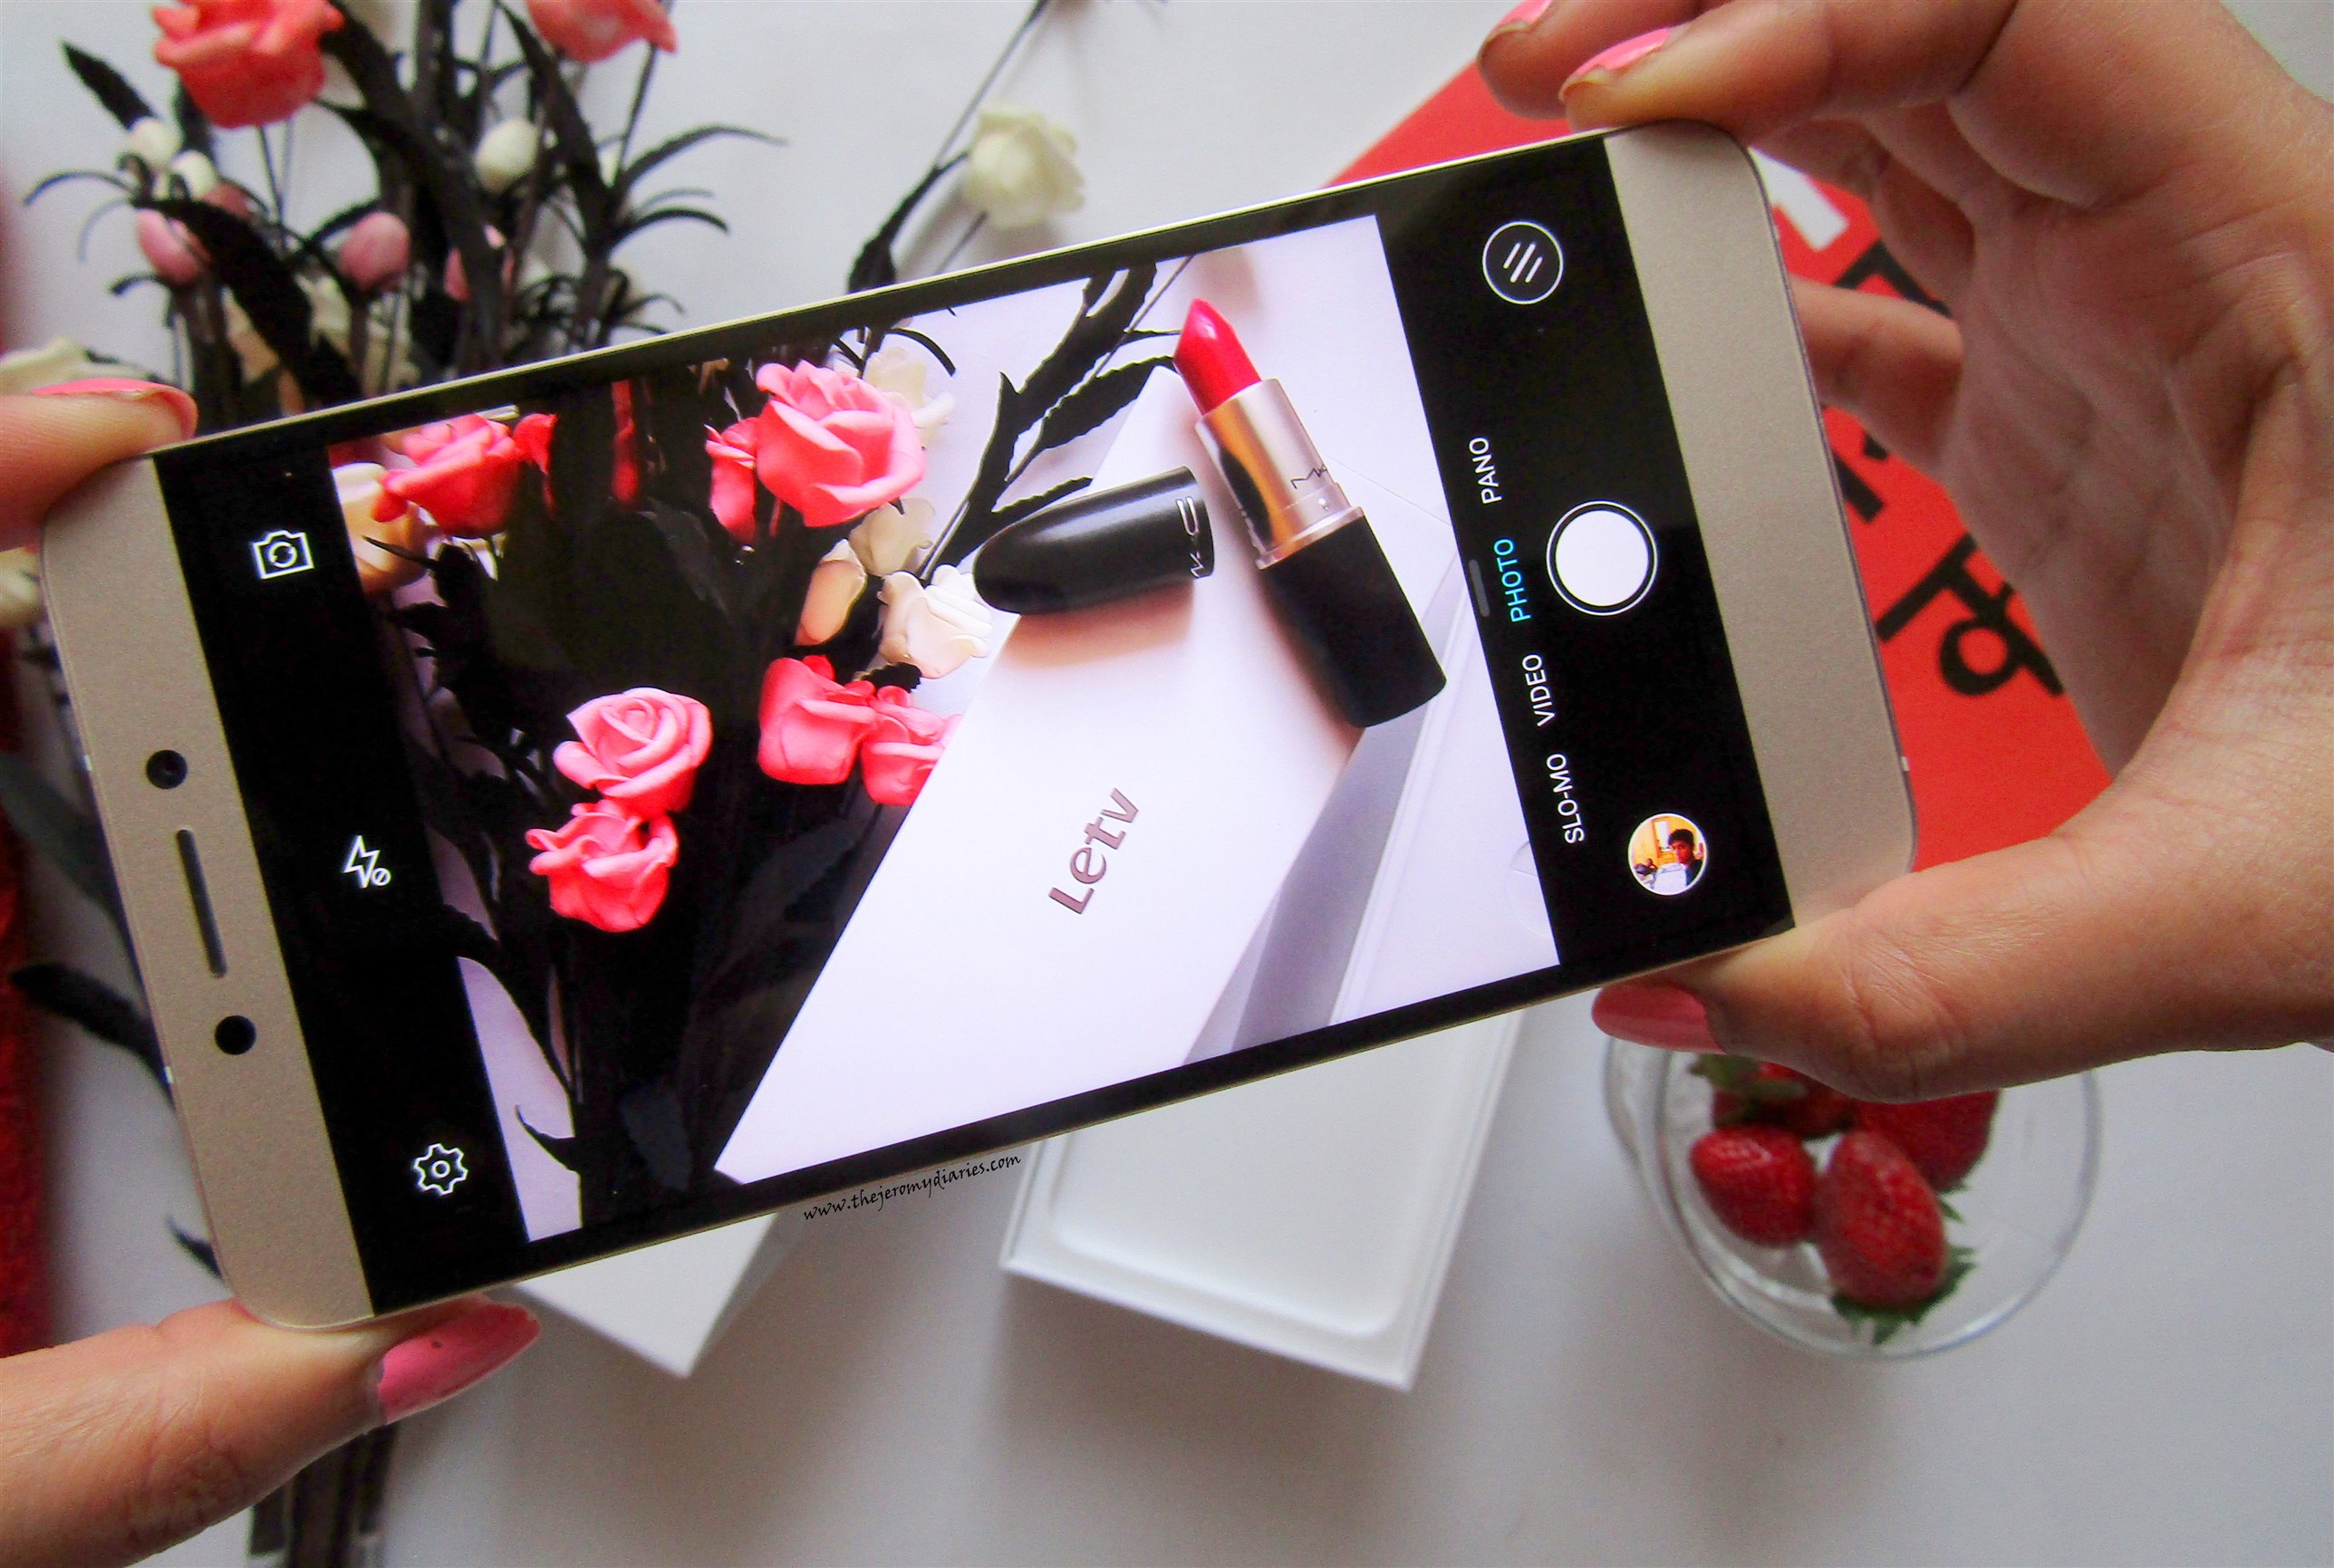 LeEco Le 1s camera review the jeromy diaries (2576 x 1731)